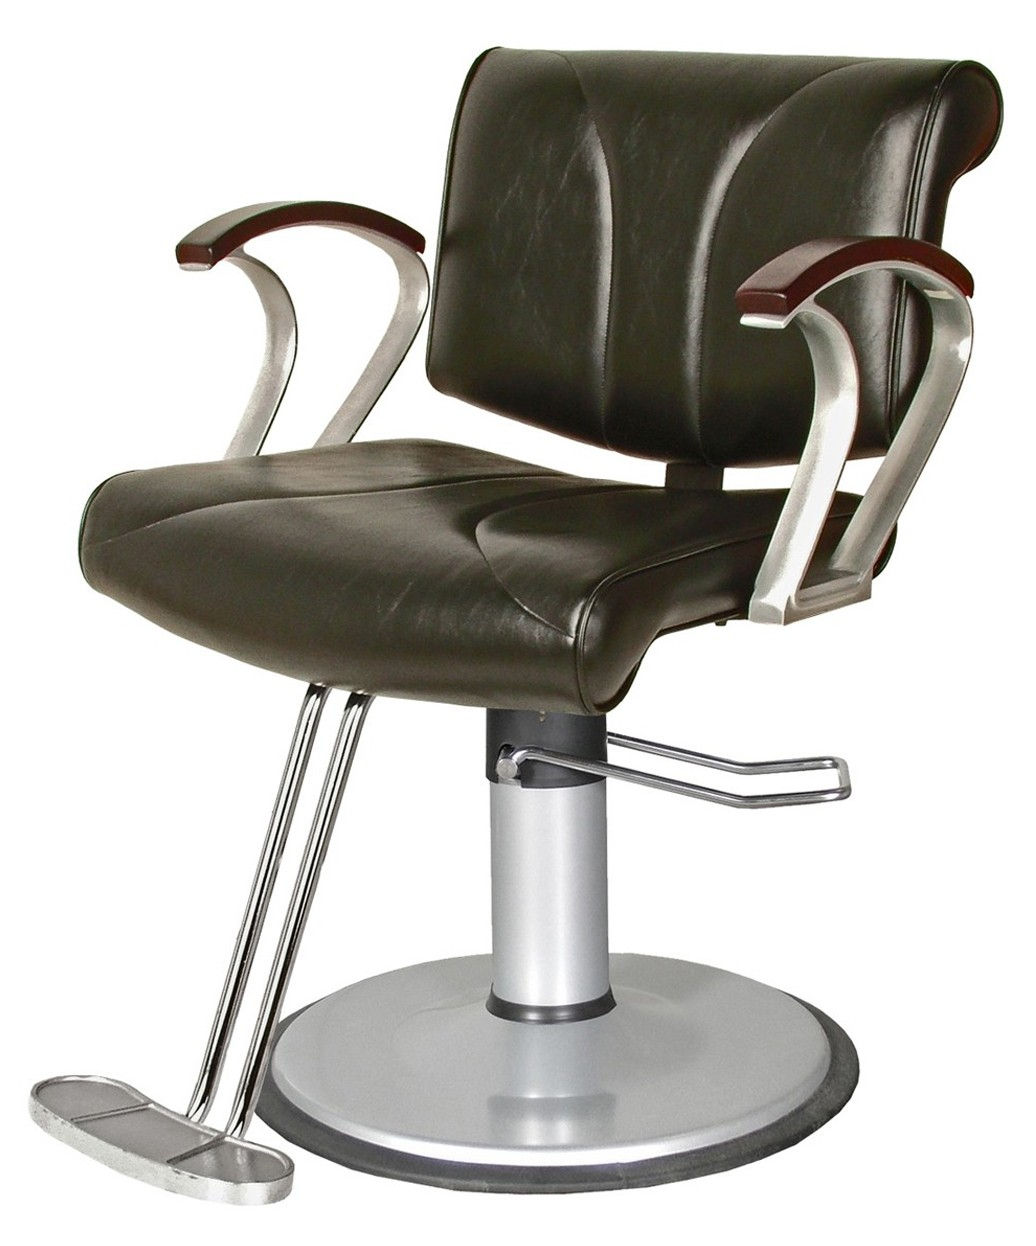 8101V Chelsea BA Styling Chair with Enviro Base